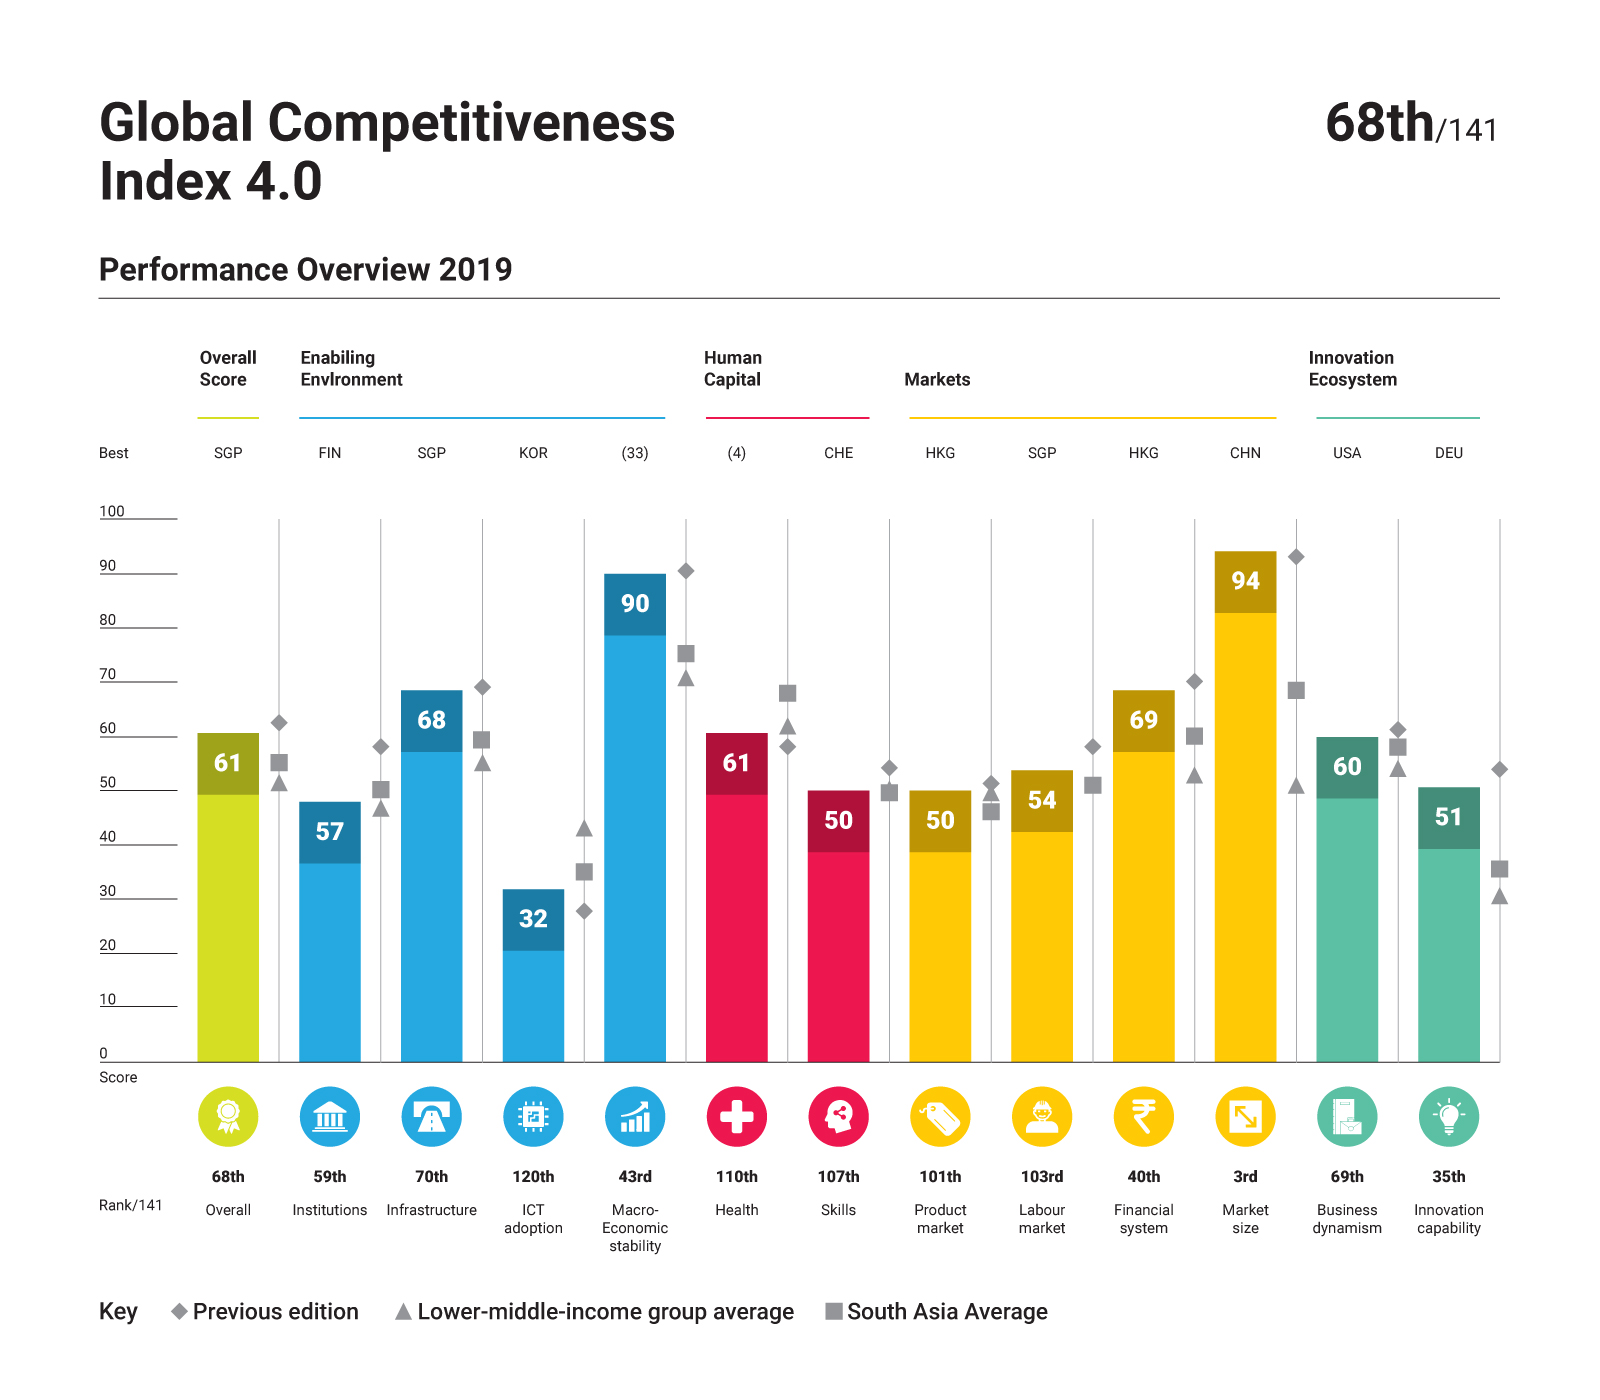 Rising global competitiveness